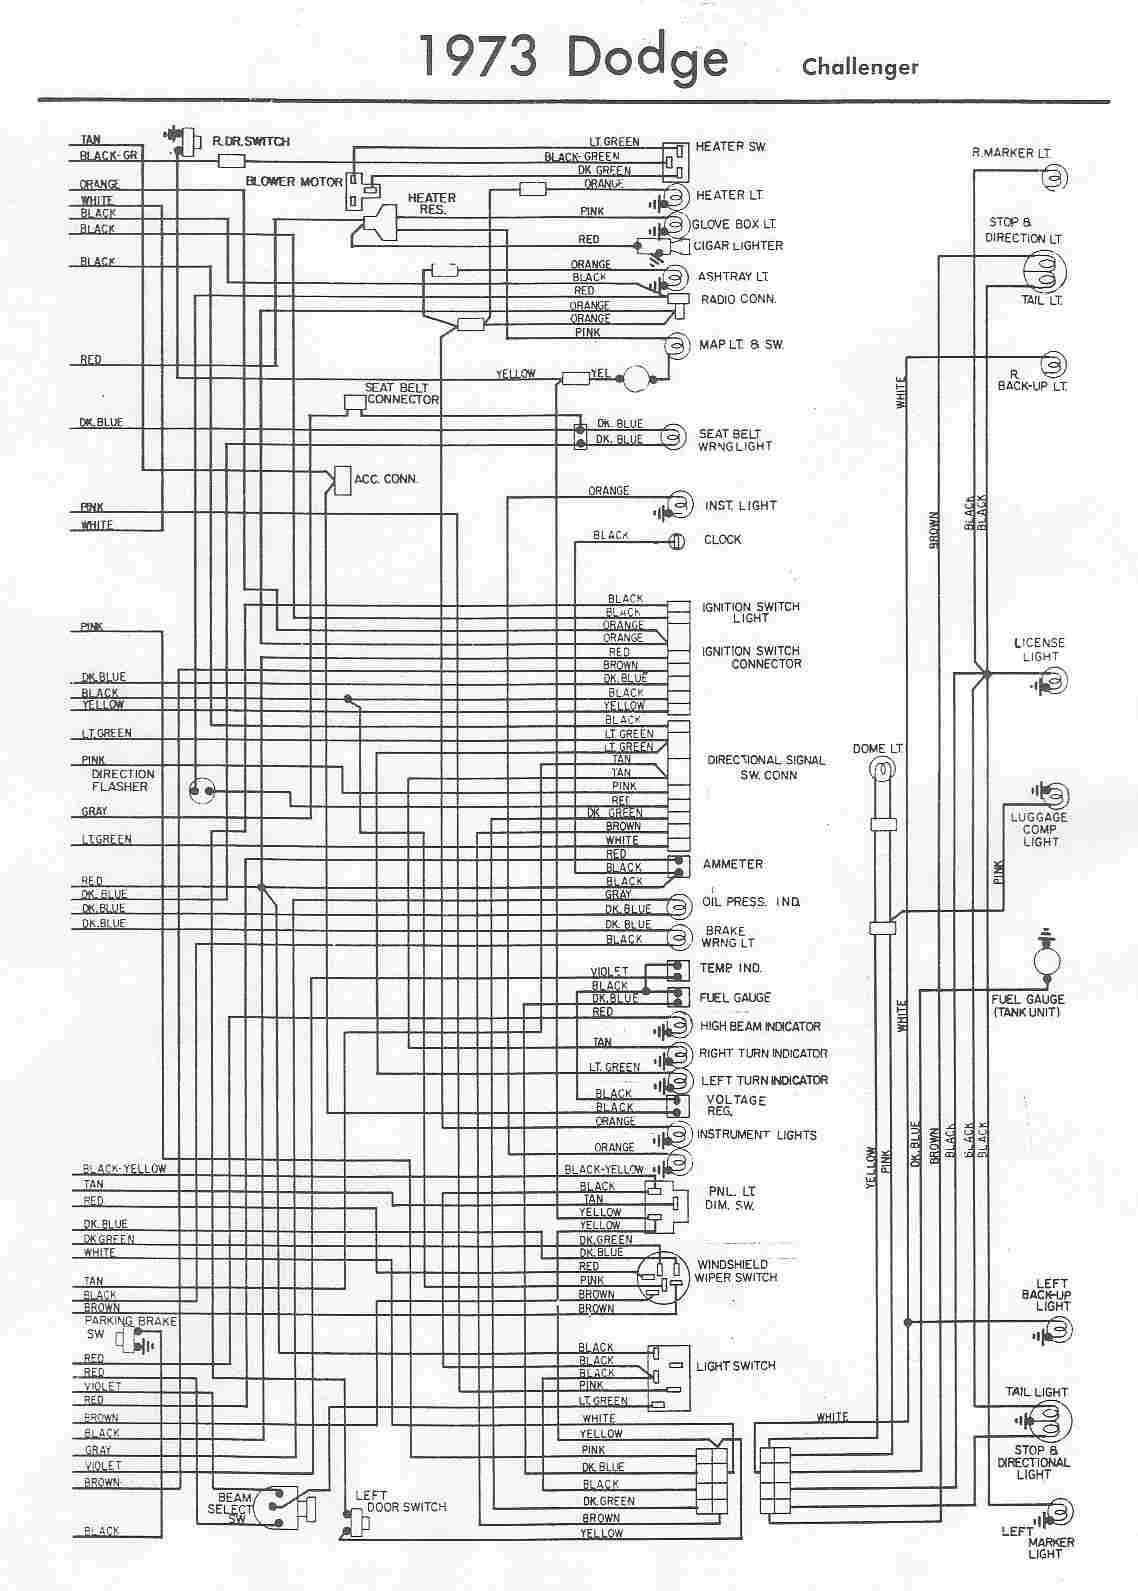 diagram] 1972 dodge challenger wiring diagram full version hd quality wiring  diagram - wiringconnectors.lexanesirac.fr  wiringconnectors.lexanesirac.fr